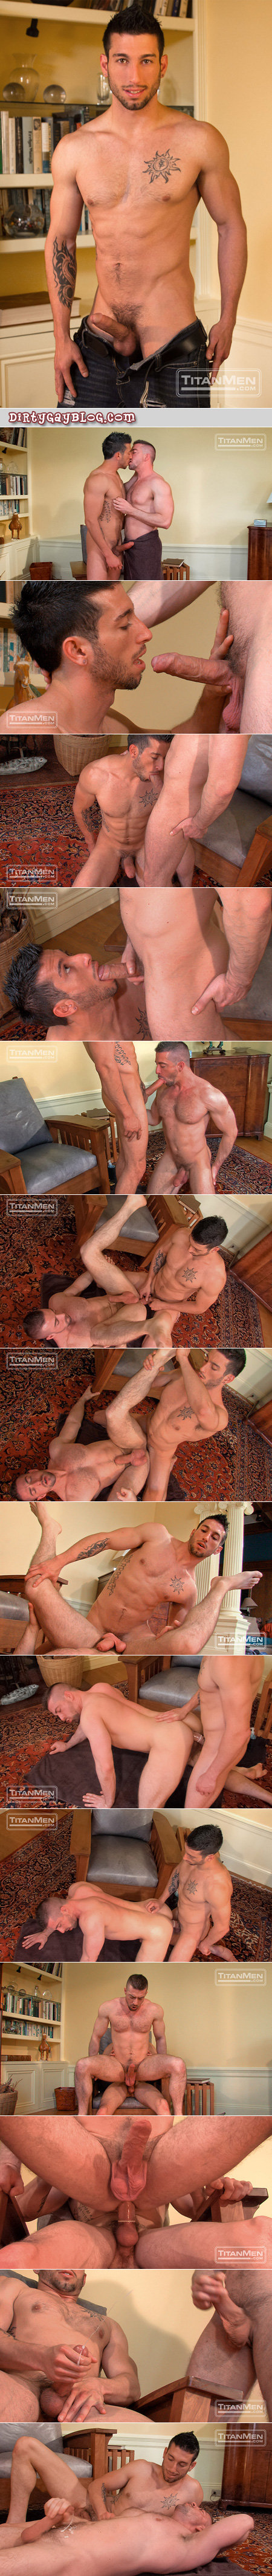 Beefy muscle cub loves being fucked in the ass.